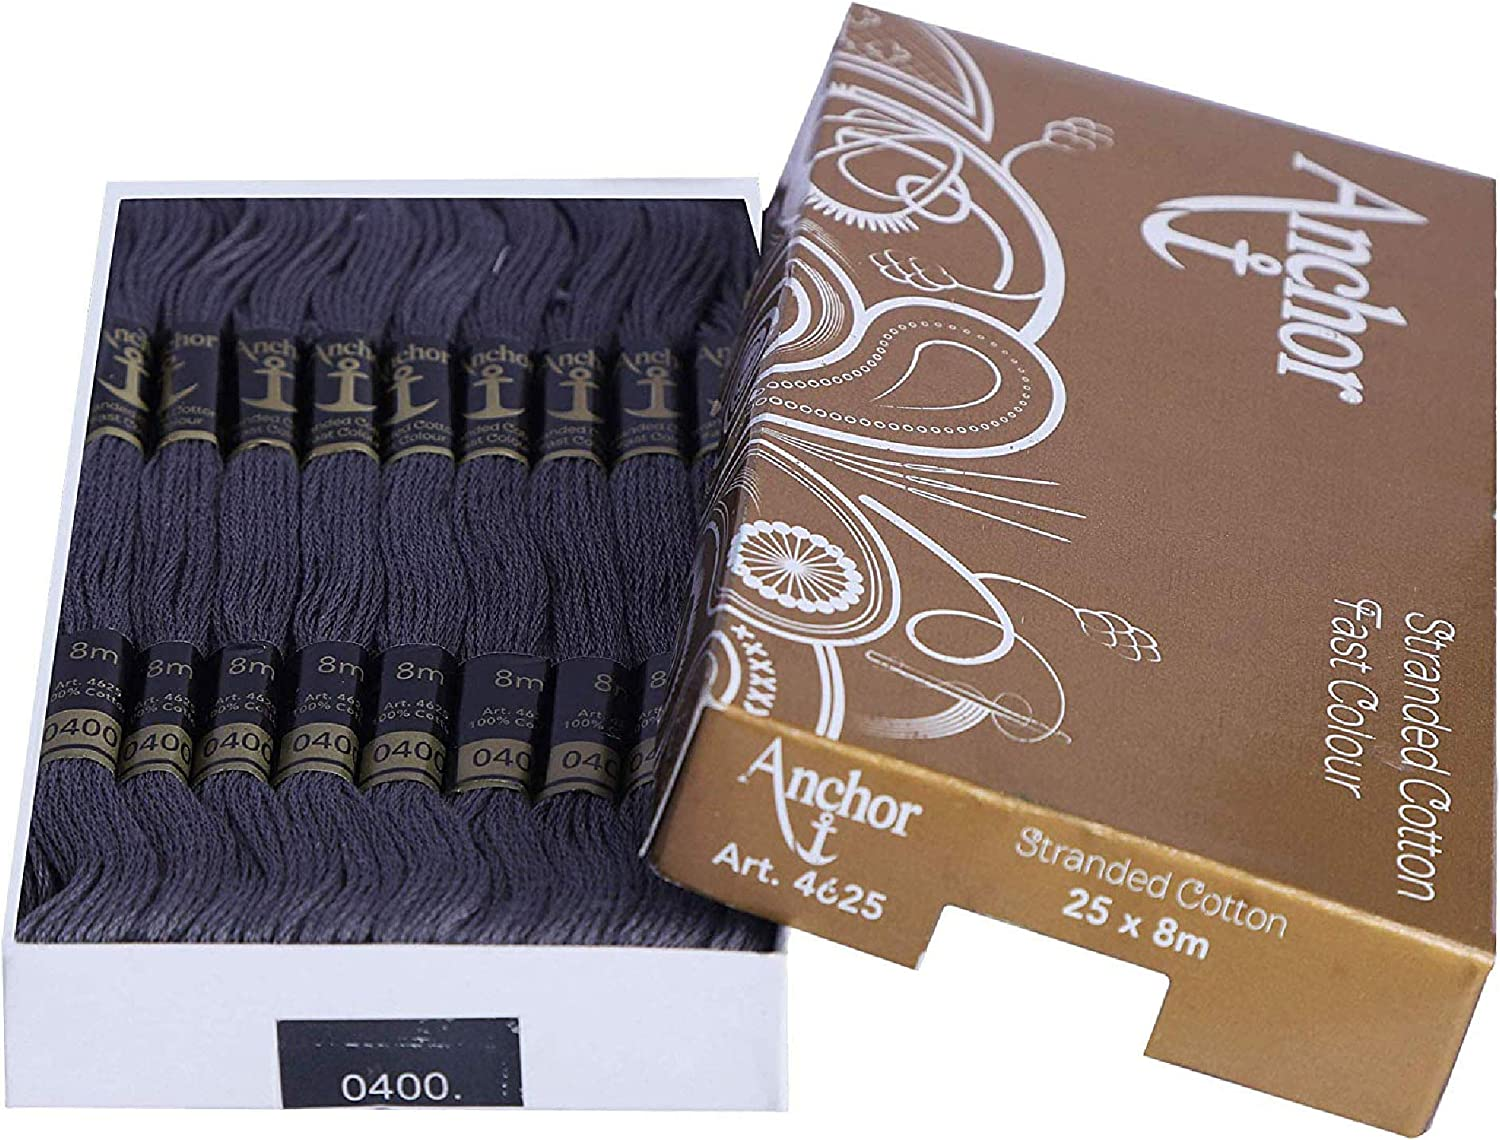 Blue/_1575 Pack of 25 Skeins Anchor Cotton Threads Beautiful Embroidery 8 m Each Skeins